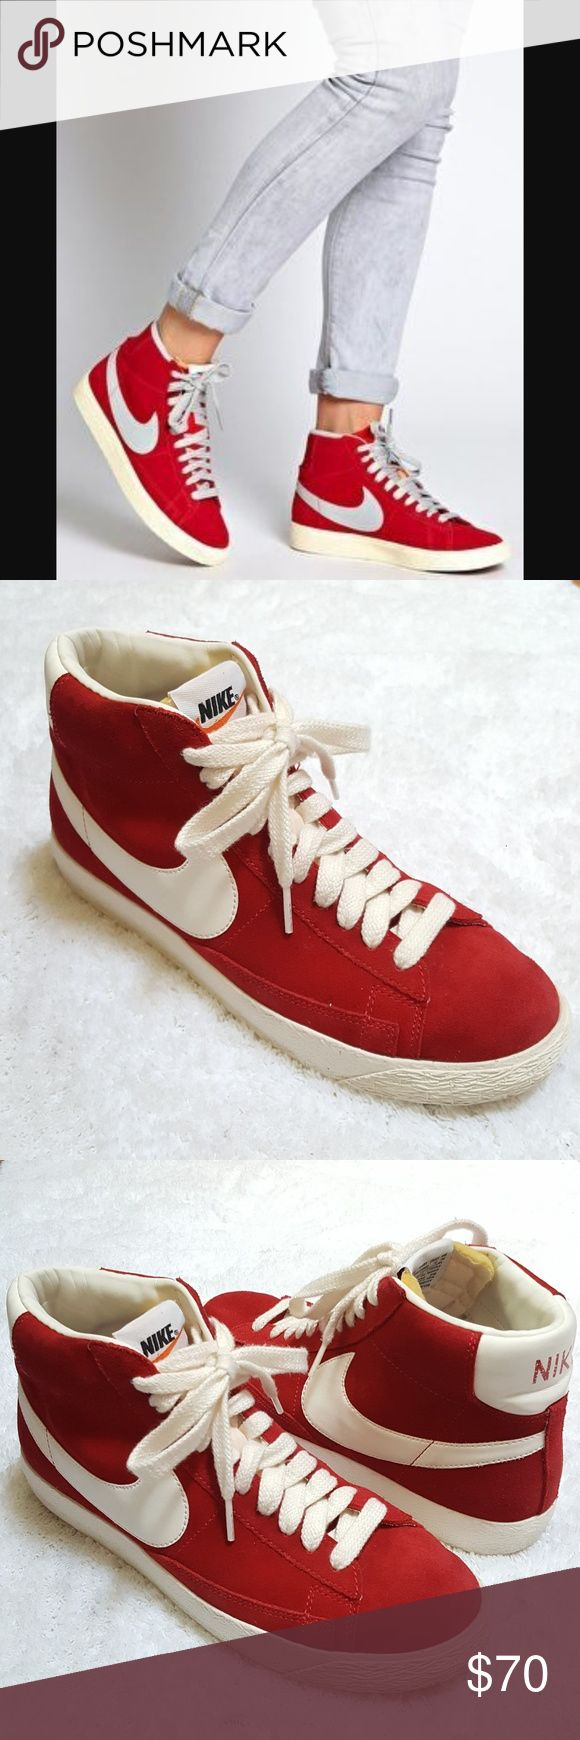 Nike Blazer x J. Crew Hi Tops Awesome apple red suede throw back hi tops. Collaboration between Nike and J. Crew. Men's 8 = Ladies 10. Nike Shoes Sneakers